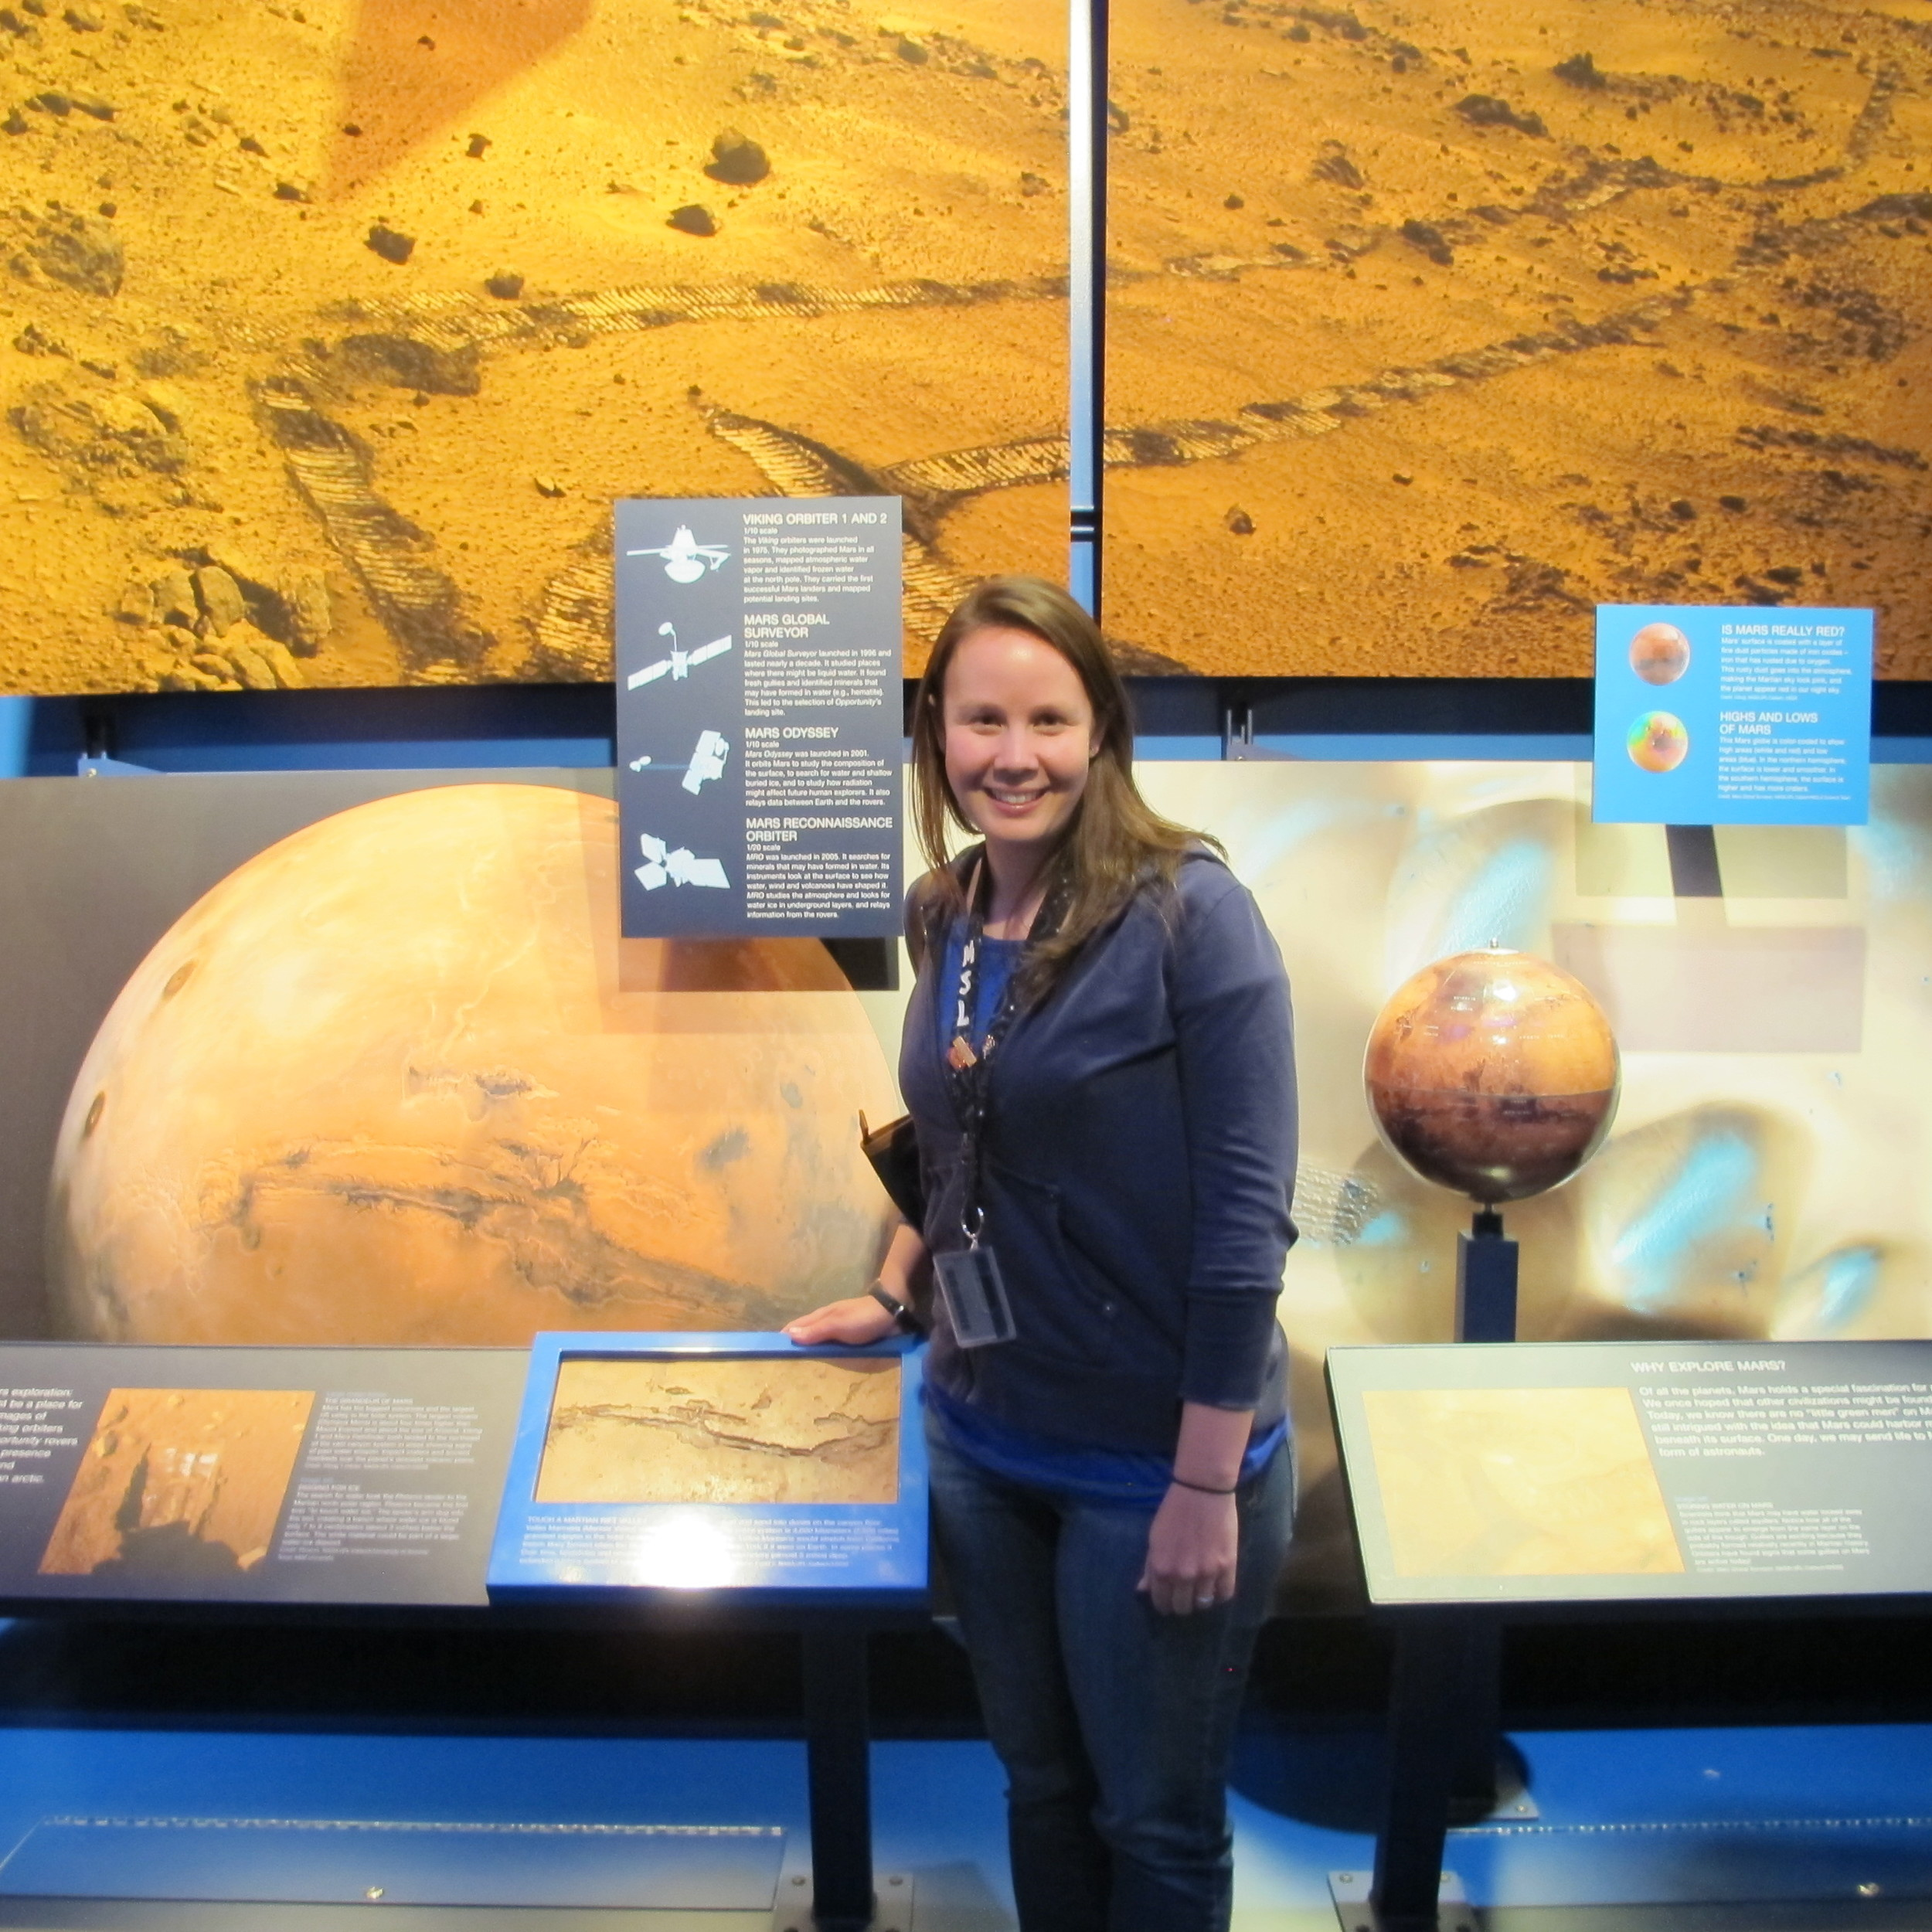 Katie gave Pamelia and me a tour of the Jet Propulsion Lab in March. That's where the Mars Rover project is based.